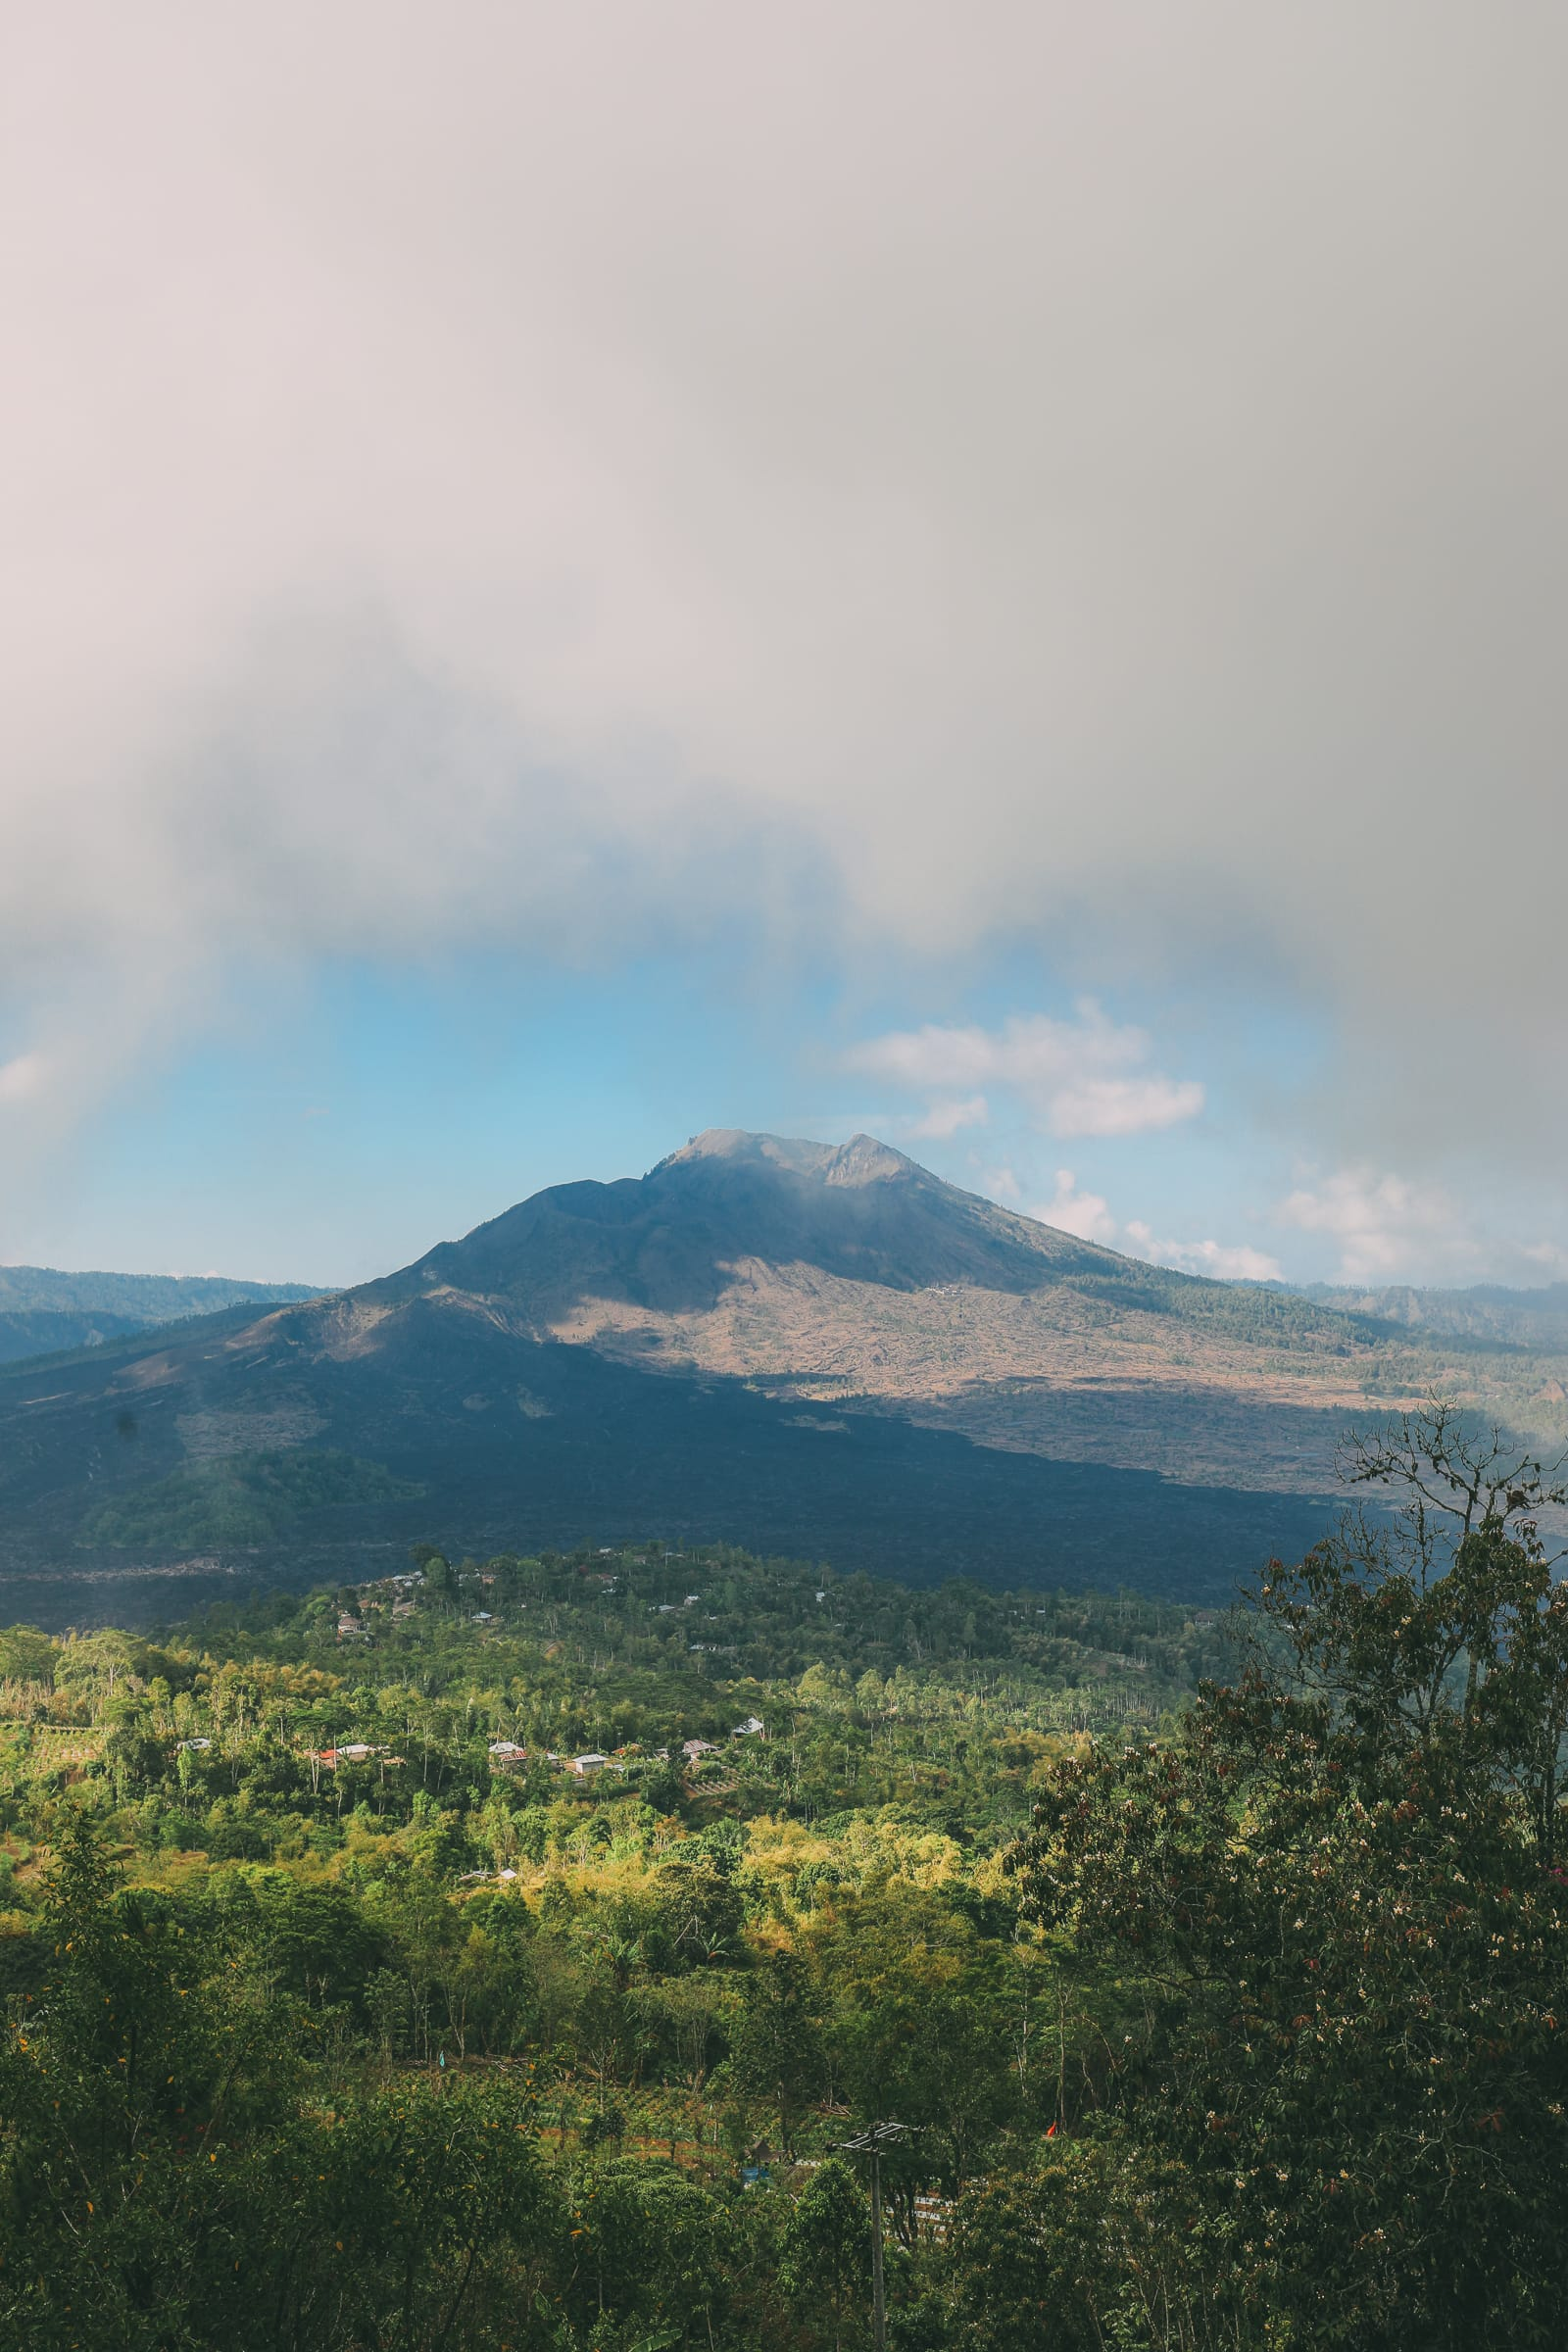 Finding A Secret Waterfall in Bali, Tirta Empul Temple And Mount Batur Volcano (33)